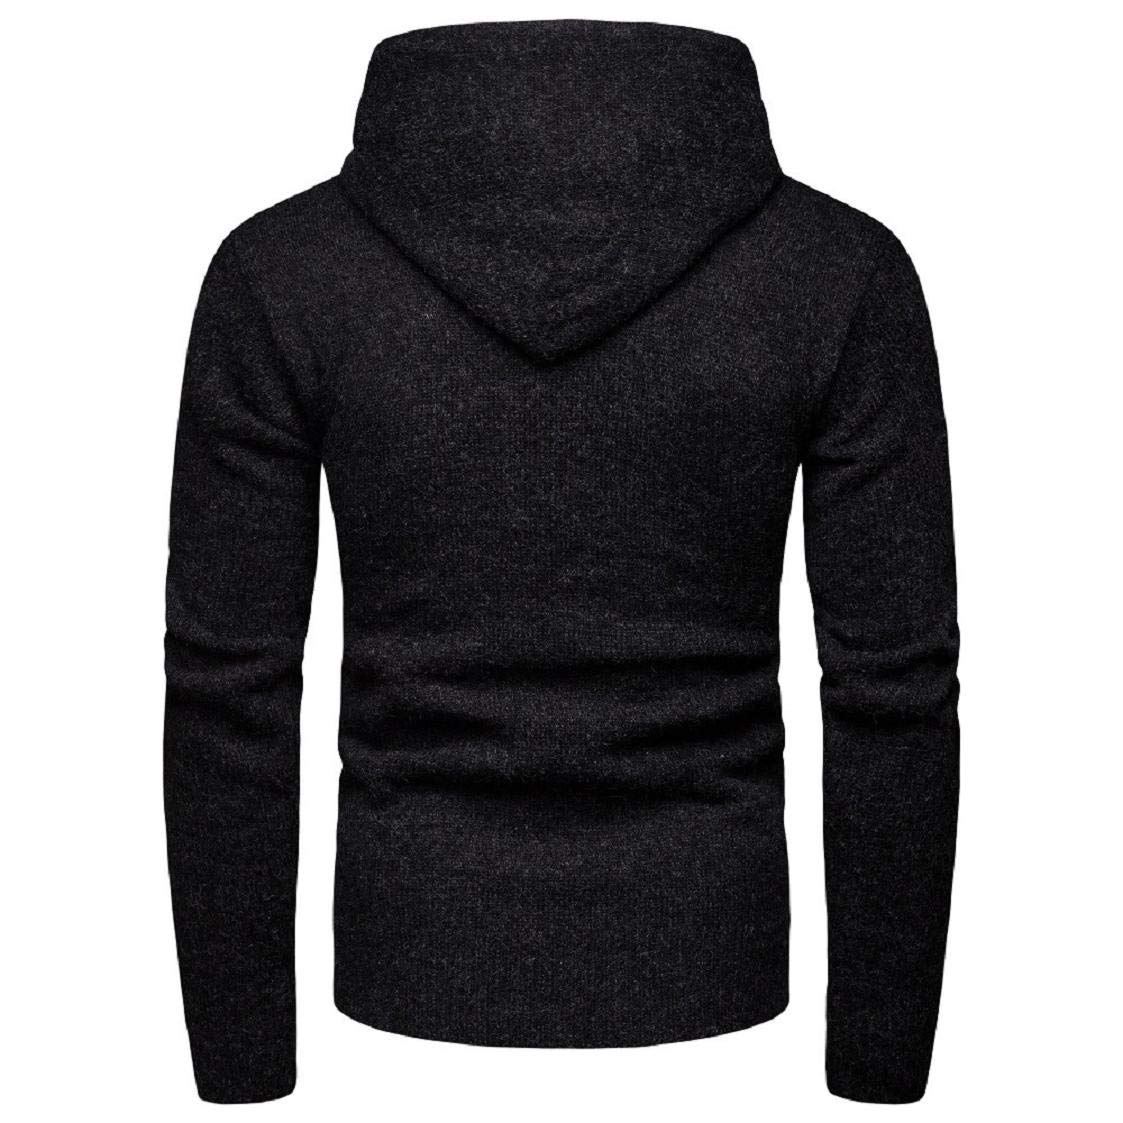 Hoodies with Front Large Pocket for Men Long Sleeve Pure Color Slim-Fit Winter Coat Rain Season Basic Shirts